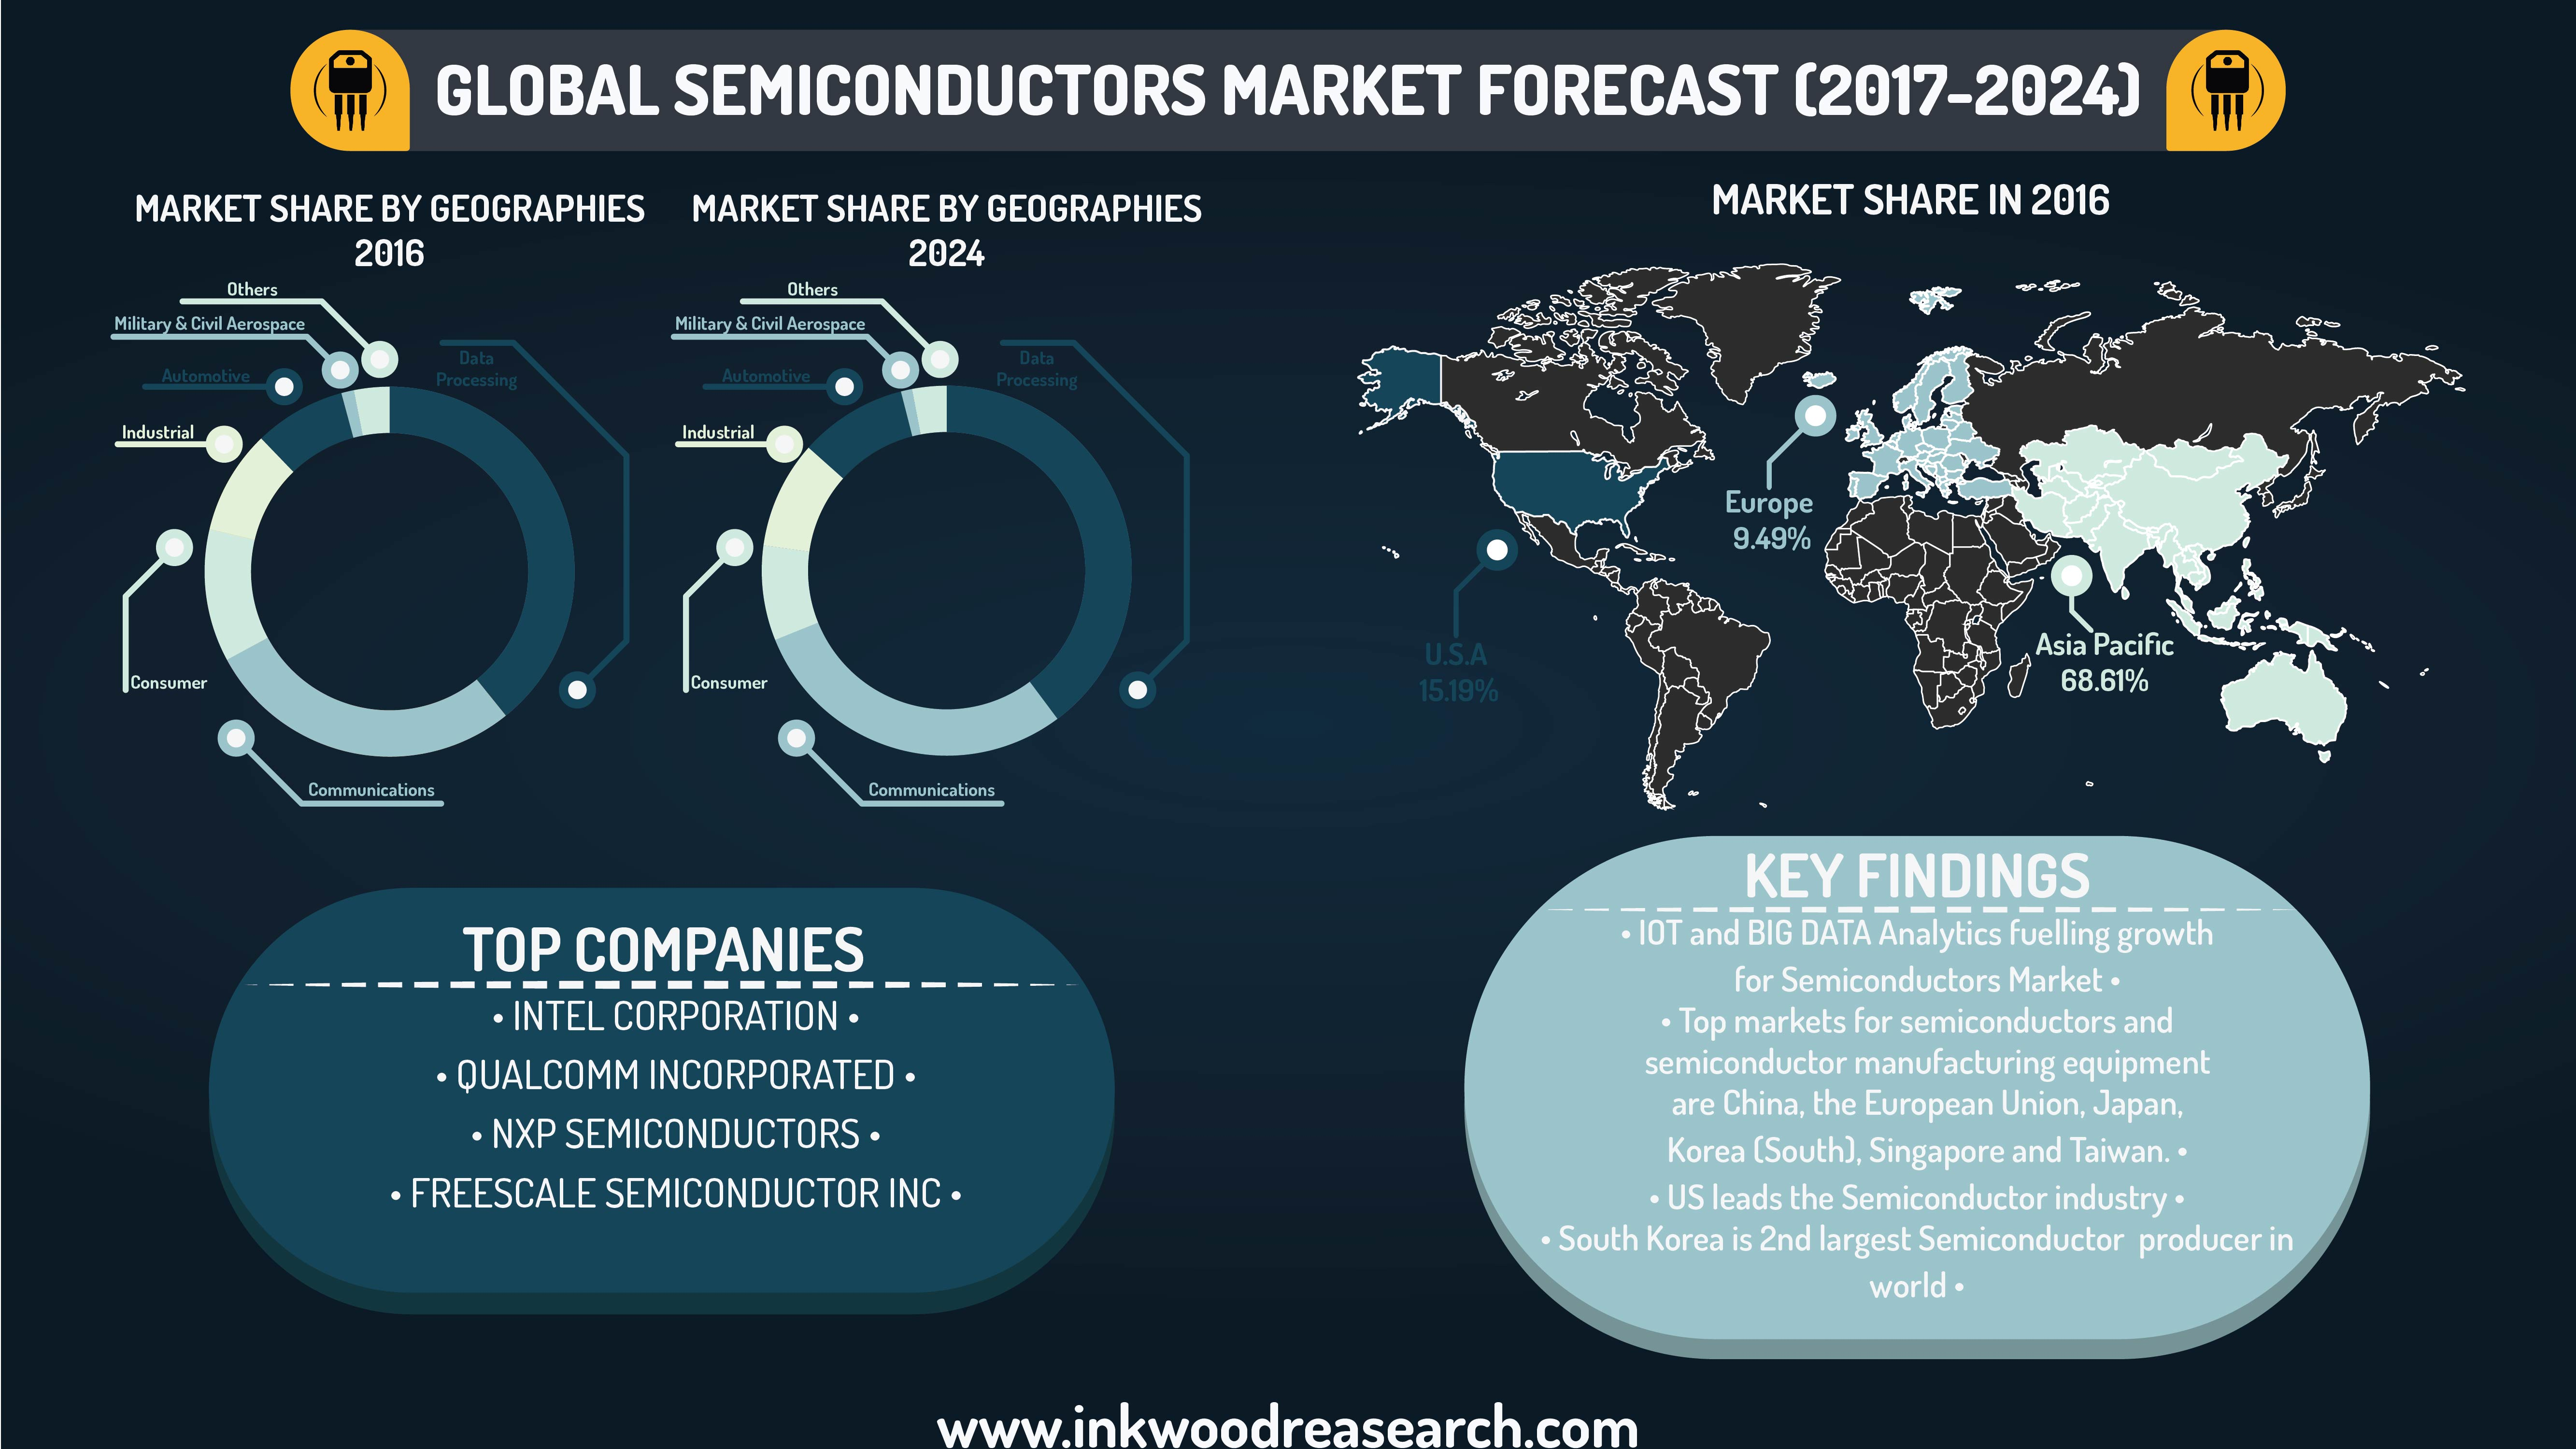 Semiconductor Industry Test : Global semiconductors industry analysis market forecast